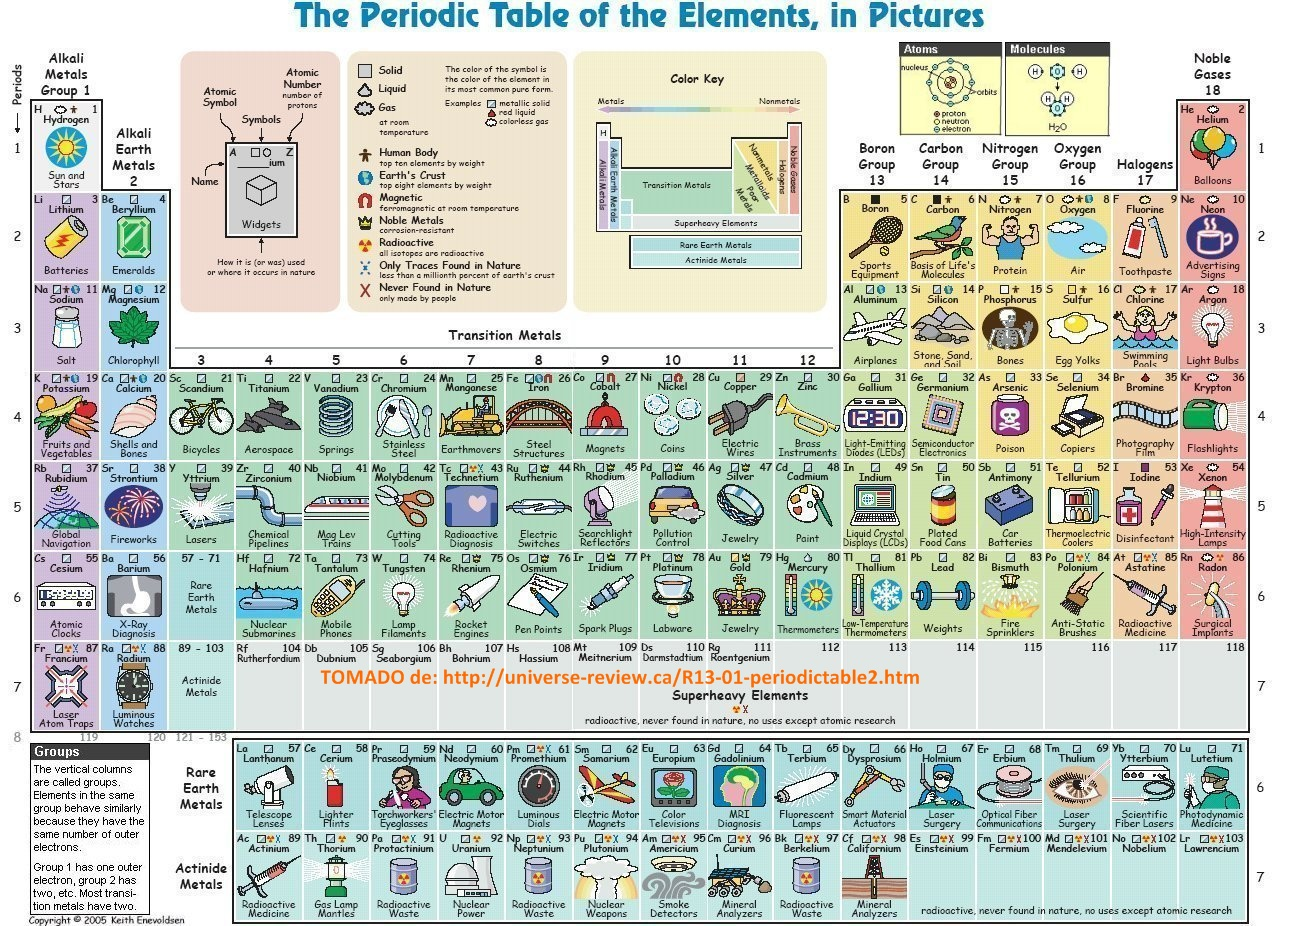 THE PERIODIC TABLE OF THE ELEMENTS, IN PICTURES